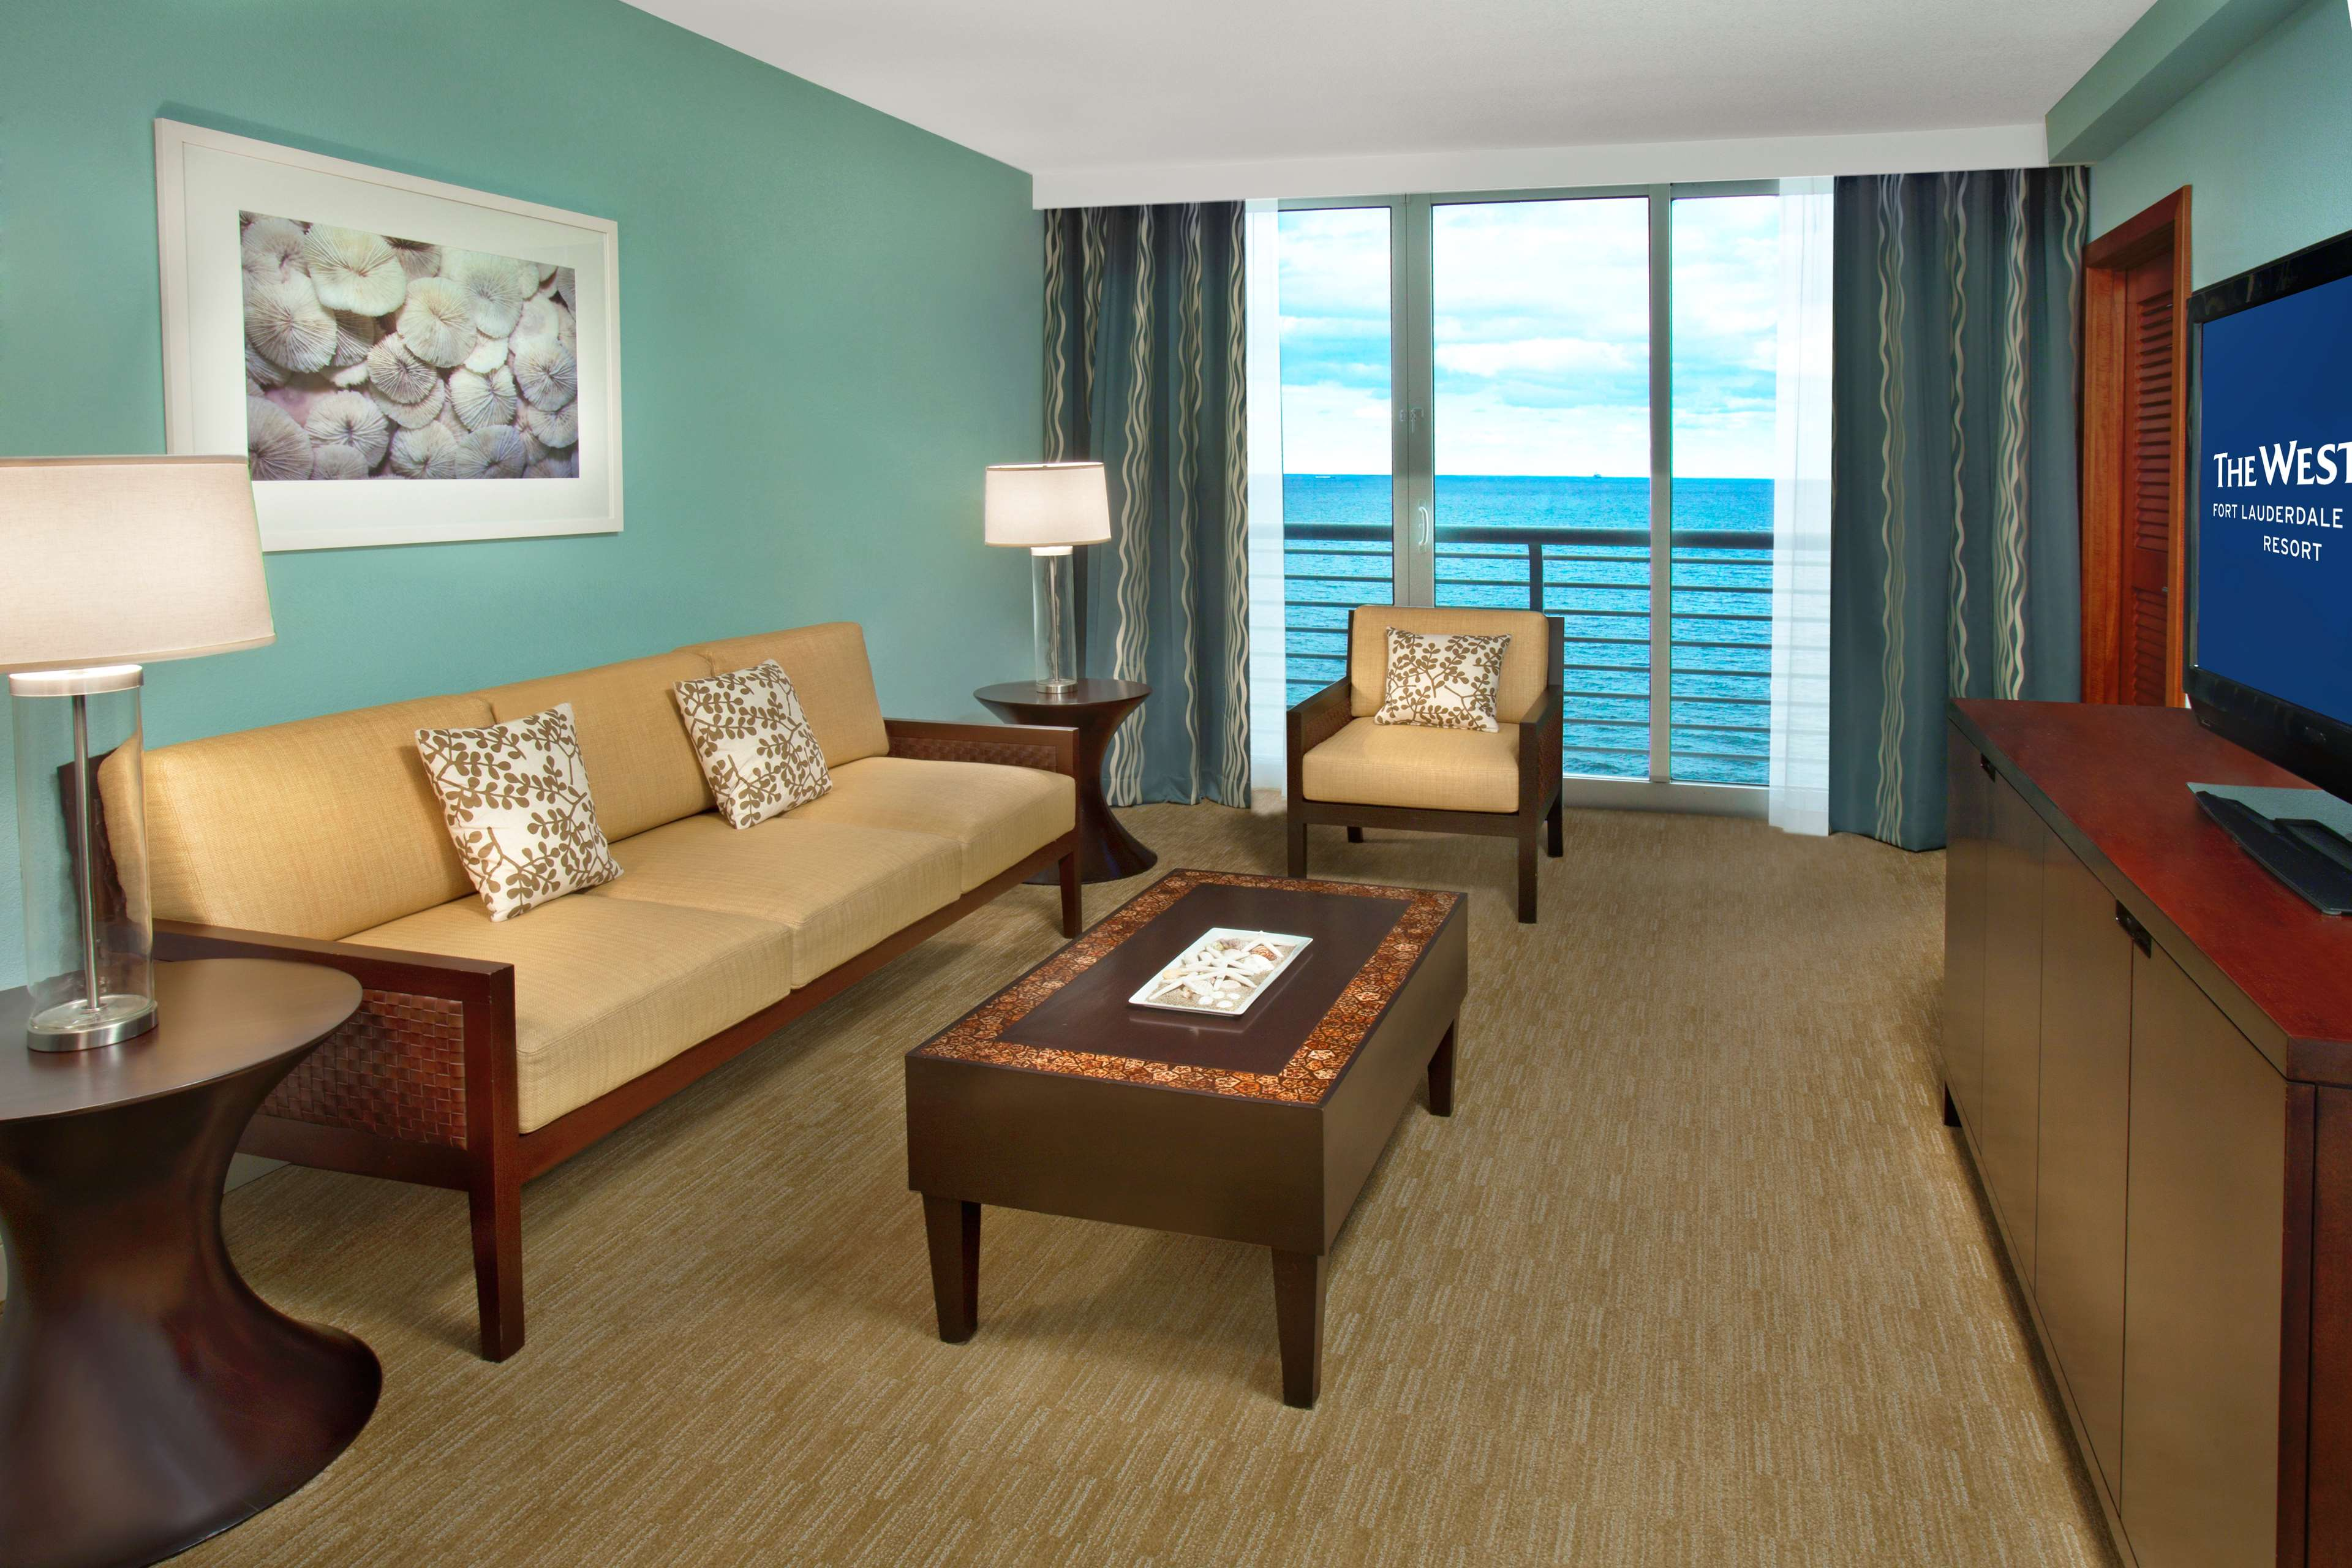 The Westin Fort Lauderdale Beach Resort image 30